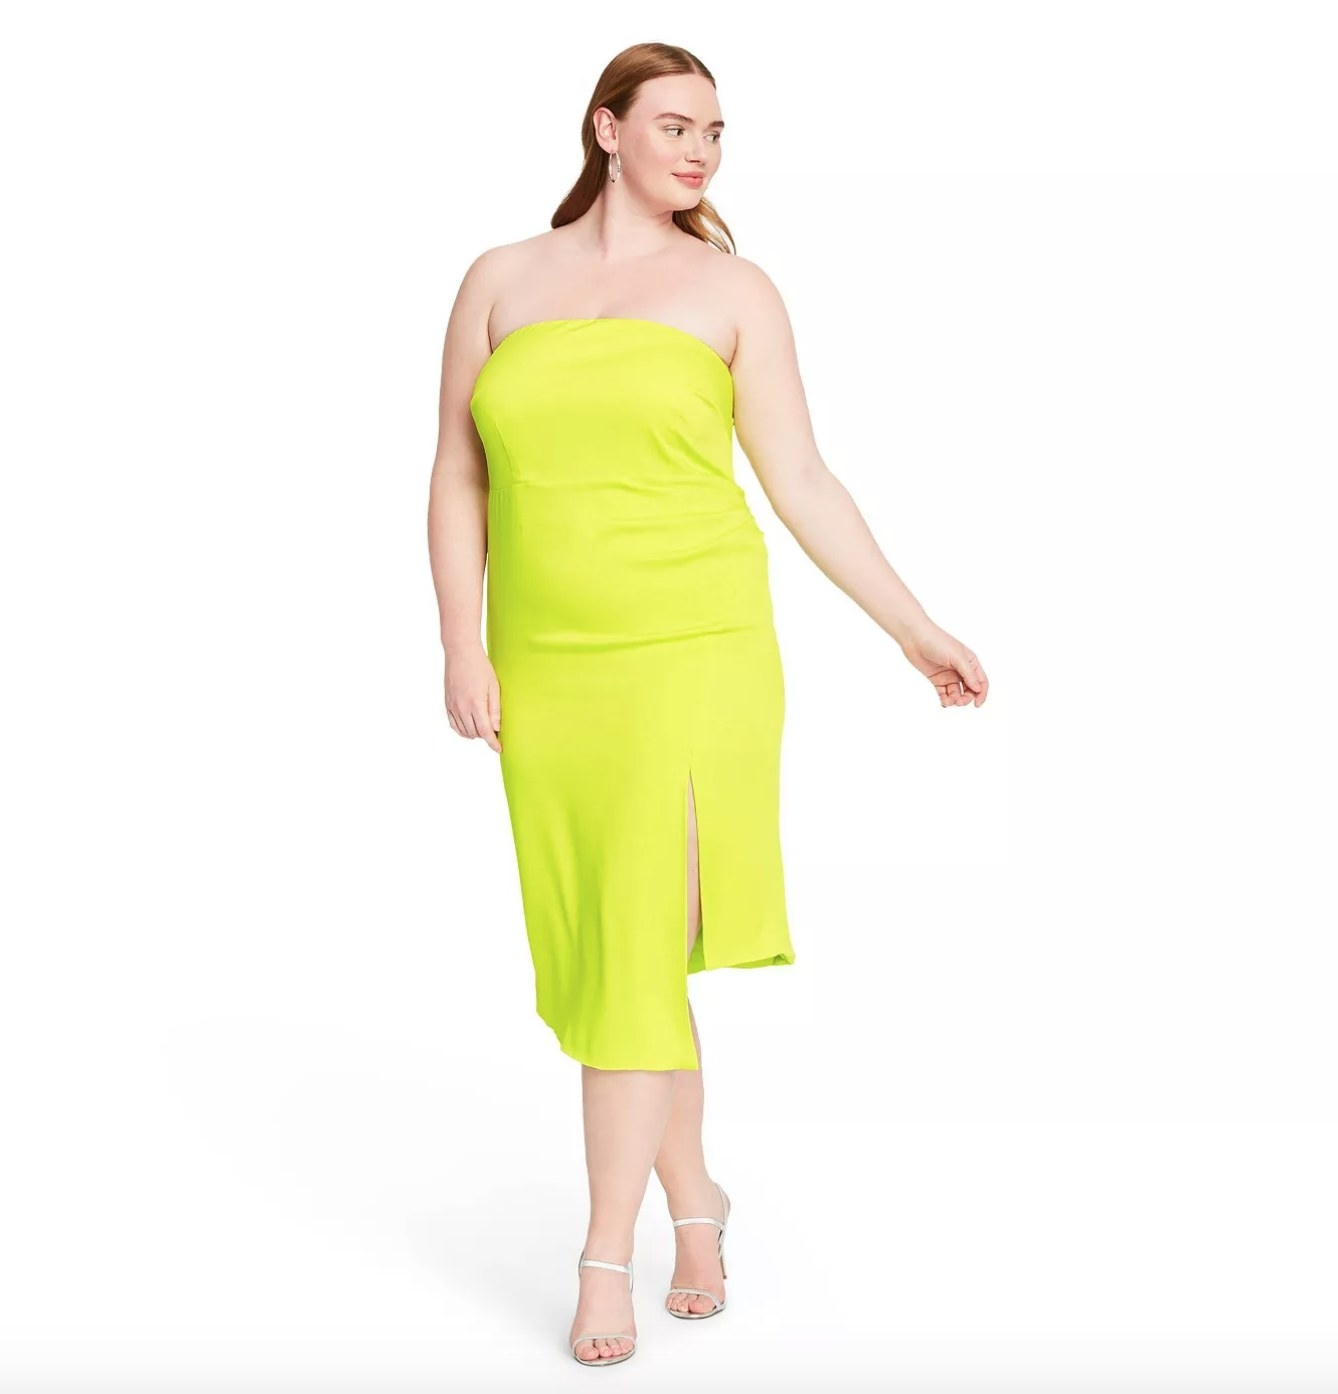 Model wearing the bright green strapless dress